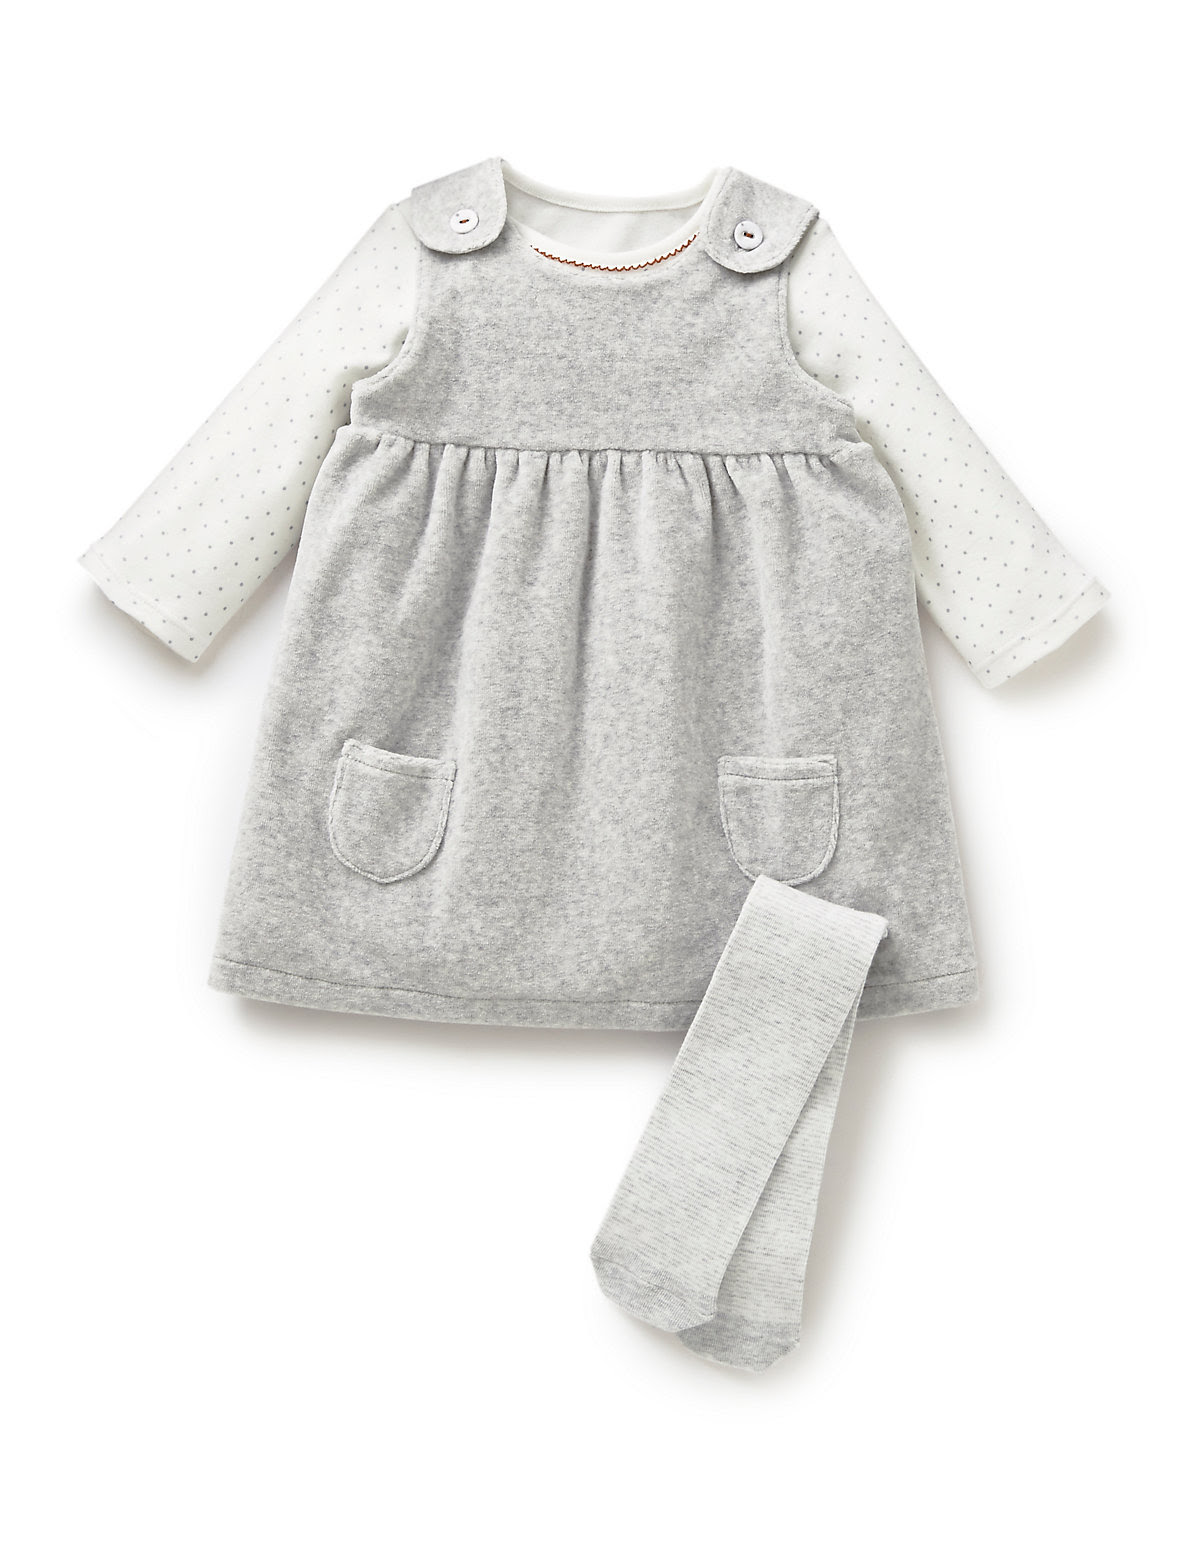 3 Piece Cotton Rich Velour Dress, Bodysuit & Tights Outfit